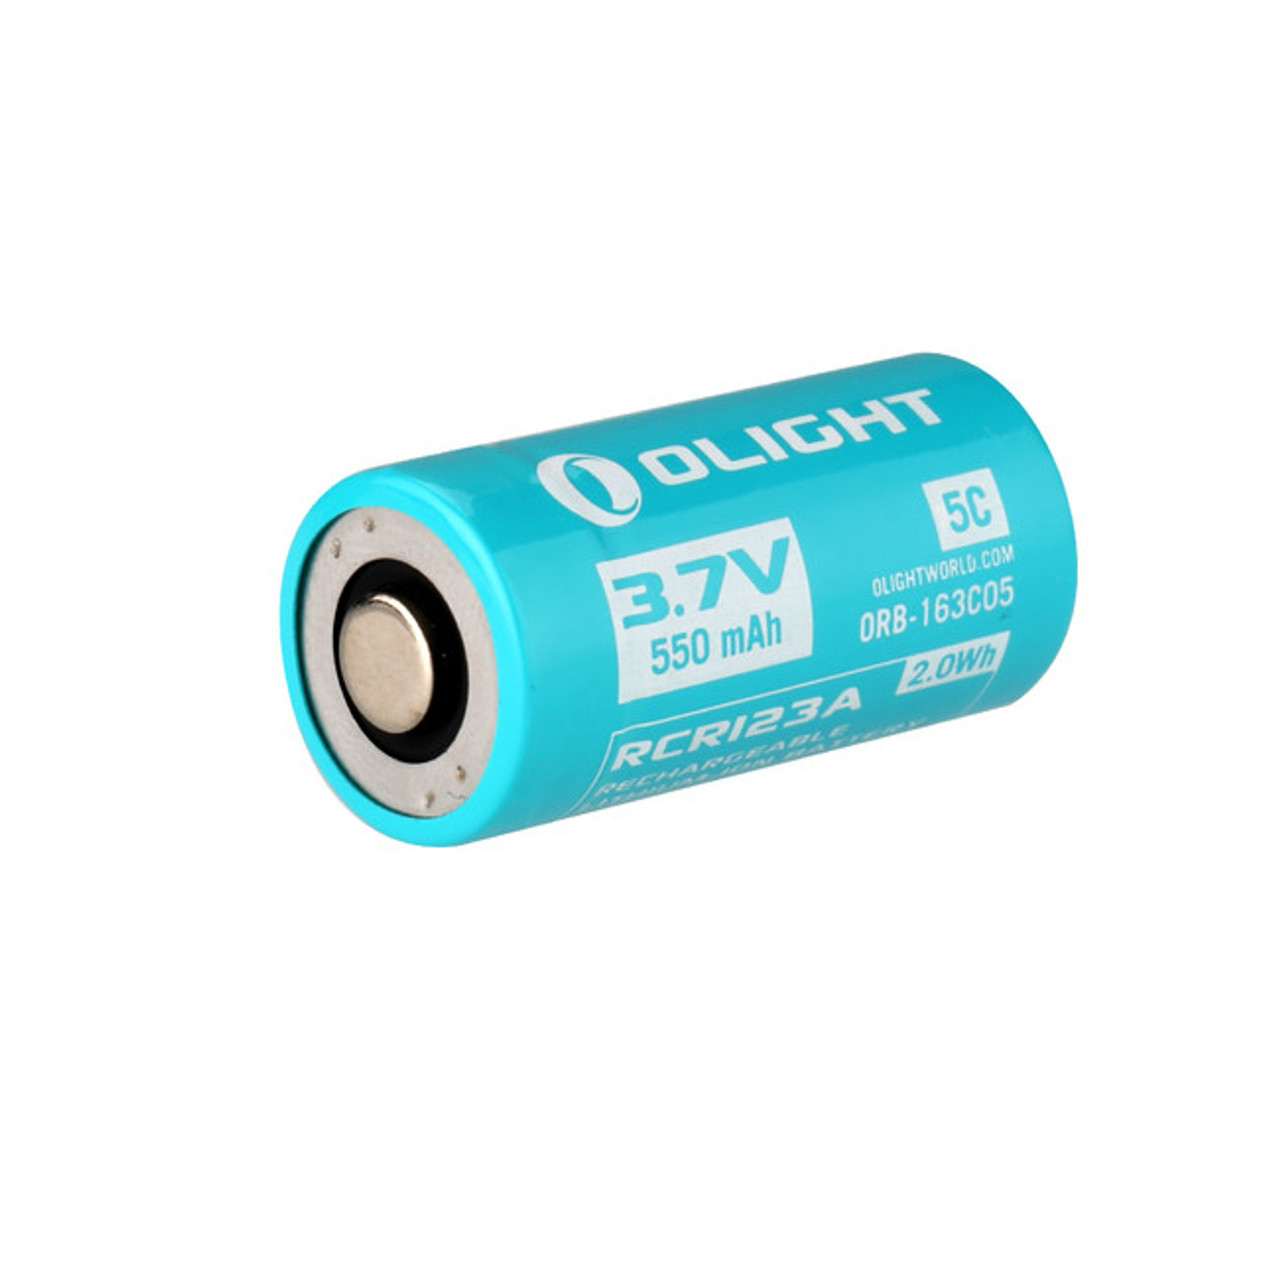 Olight CR123A Rechargeable Battery 650 mAh